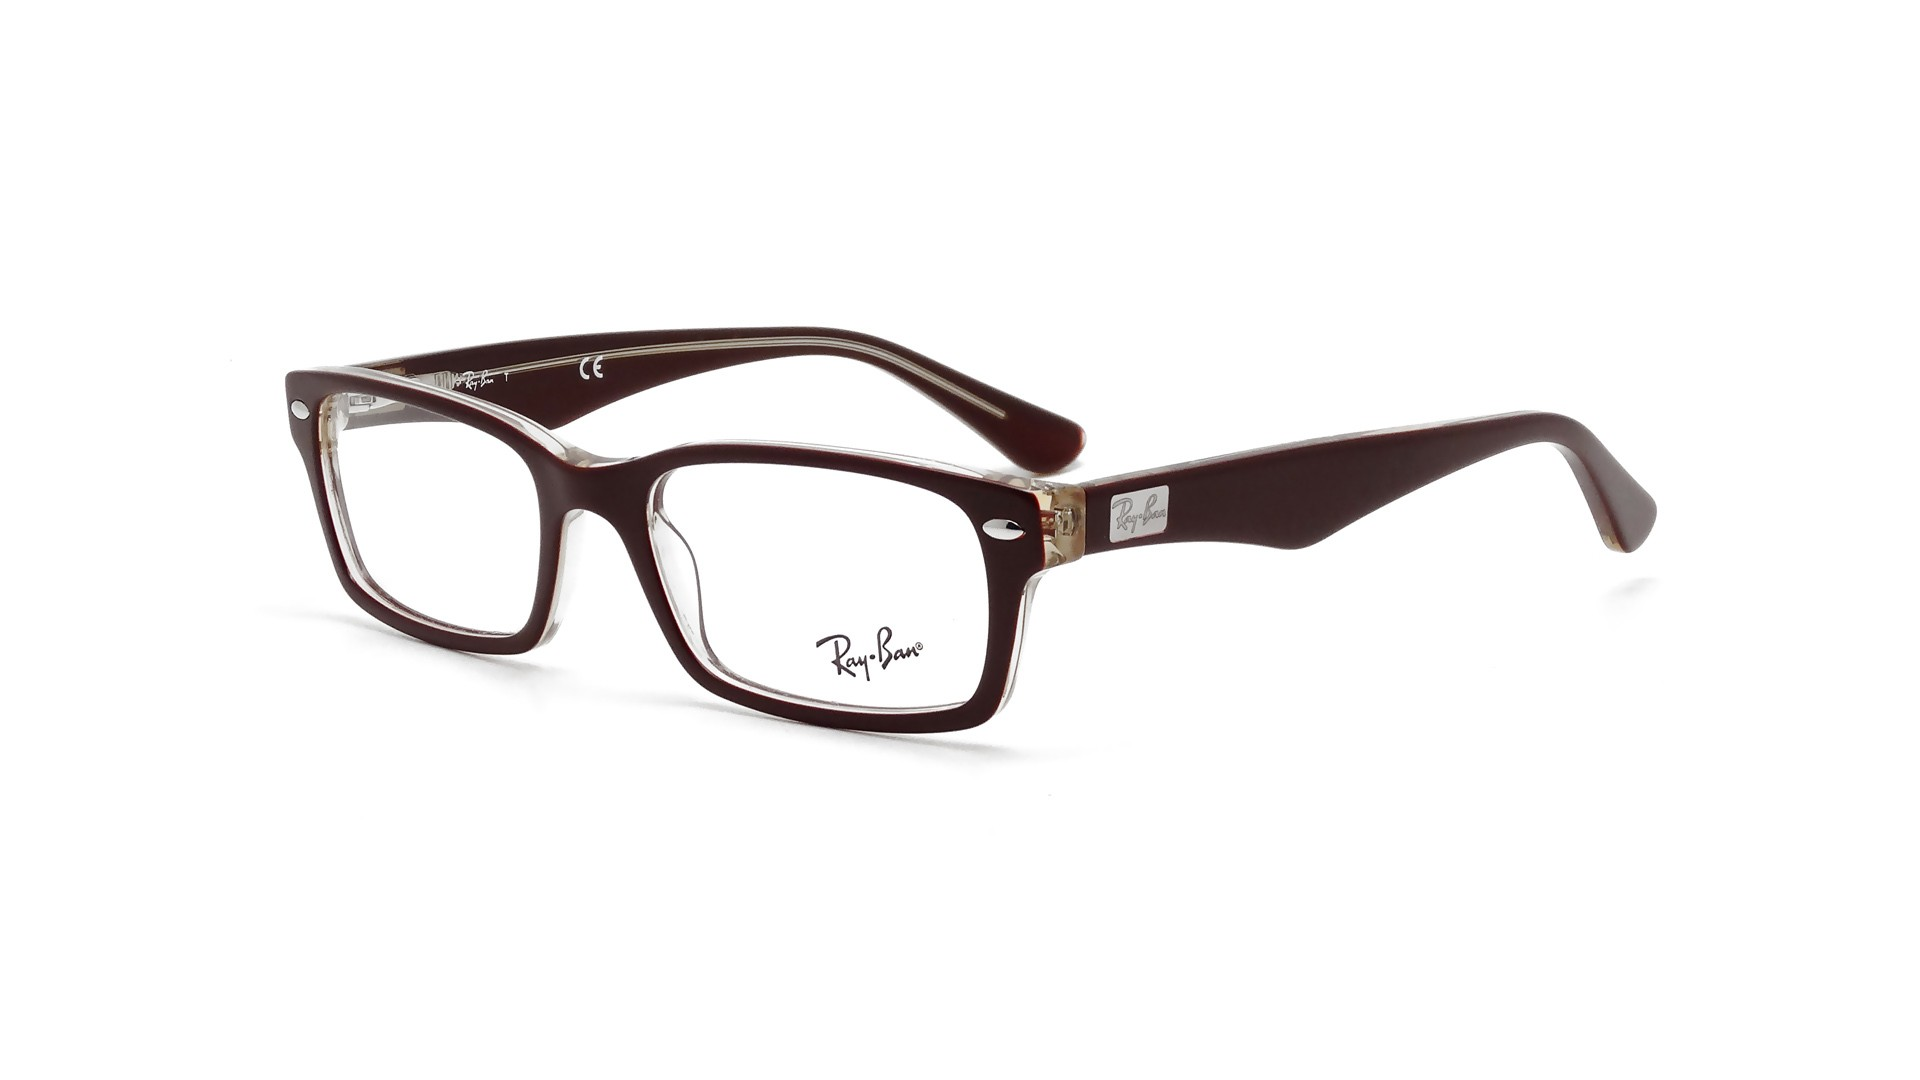 Glasses Frames Recto Or Quiapo : Eye glasses Ray Ban RX RB 5206 5372 Brown Medium